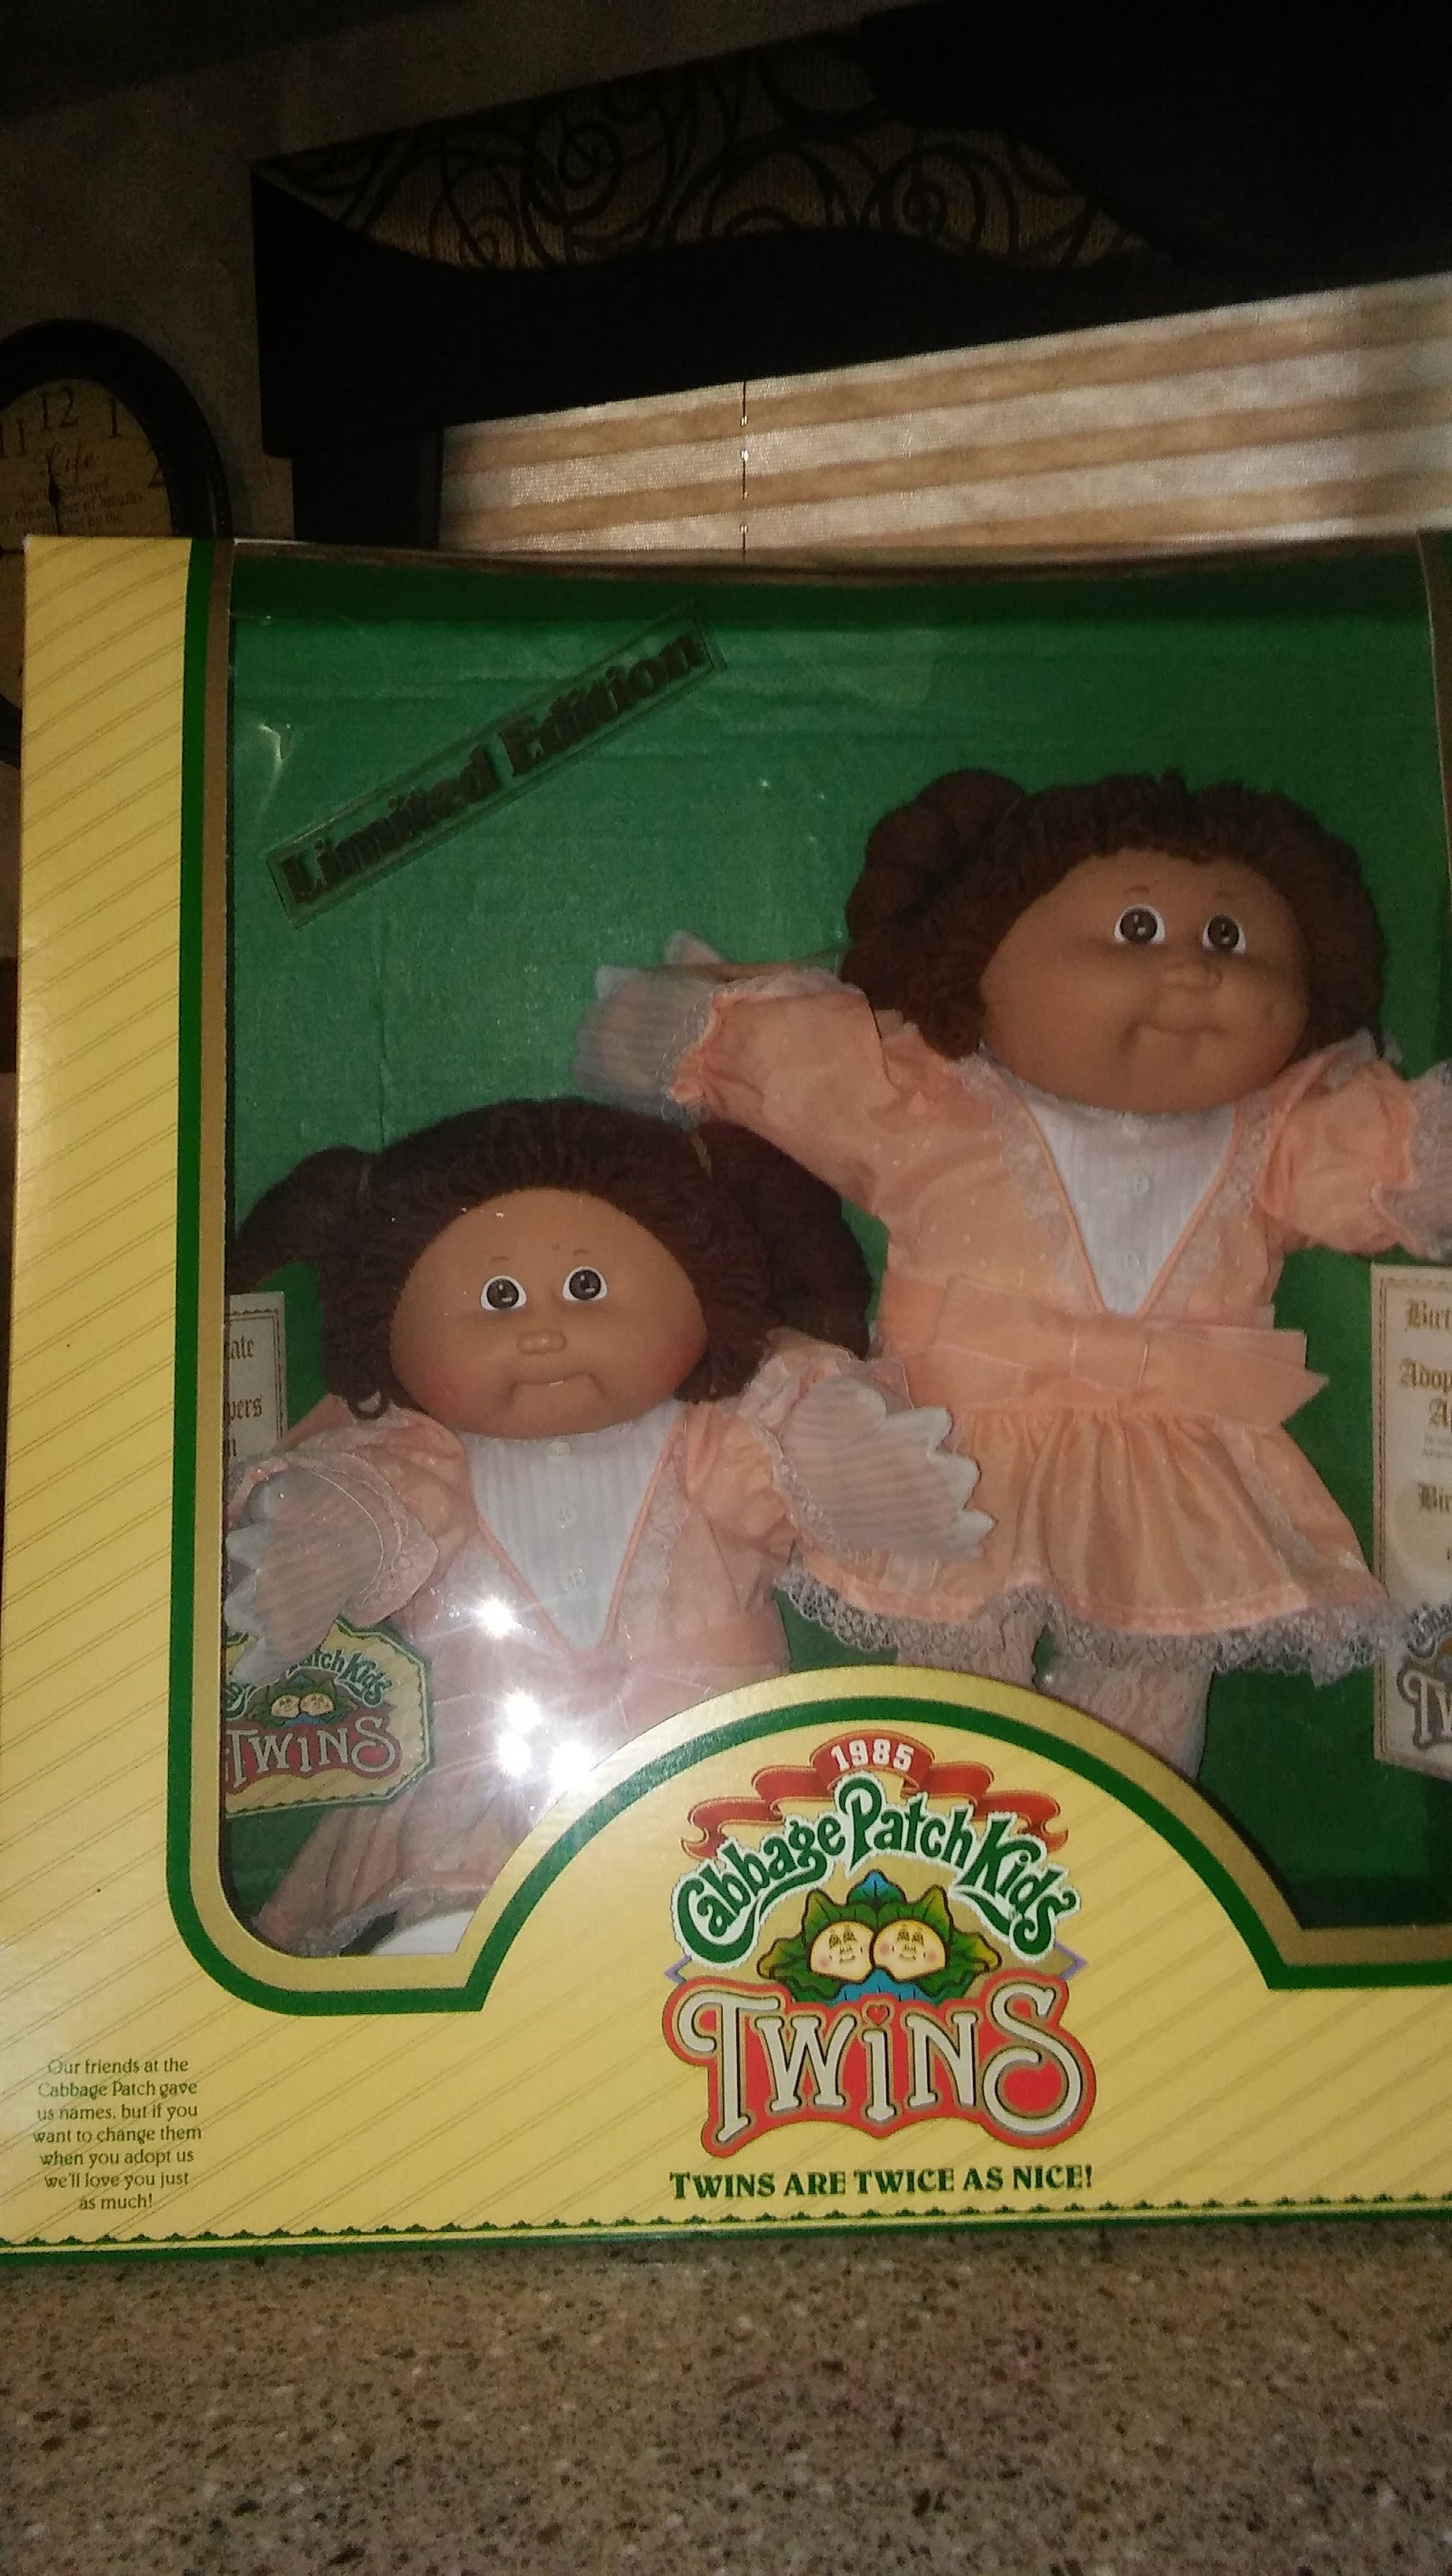 1985 Cabbage Patch Kids Limited Twin Edition These Sweet Twin Girls Have Been Kept In Box Cabbage Patch Dolls Cabbage Patch Kids Dolls Cabbage Patch Babies